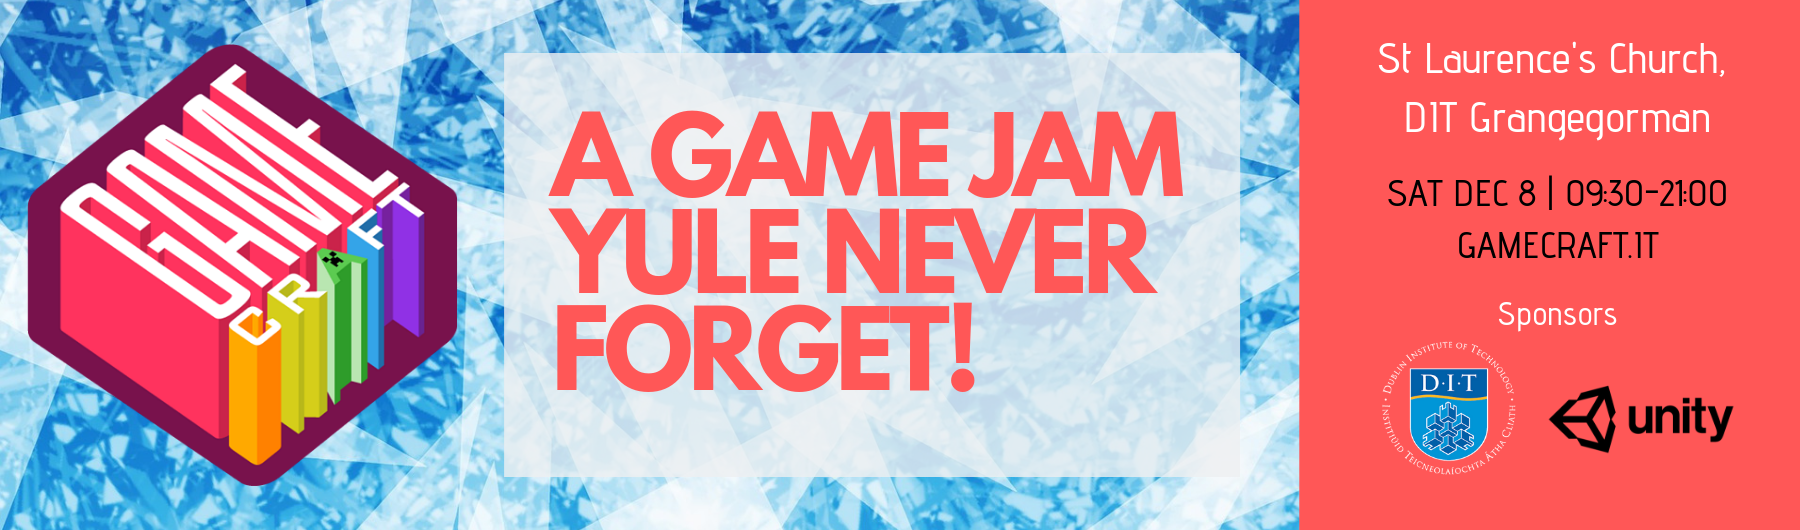 Wrap up the year with a gamejam yule never forget!